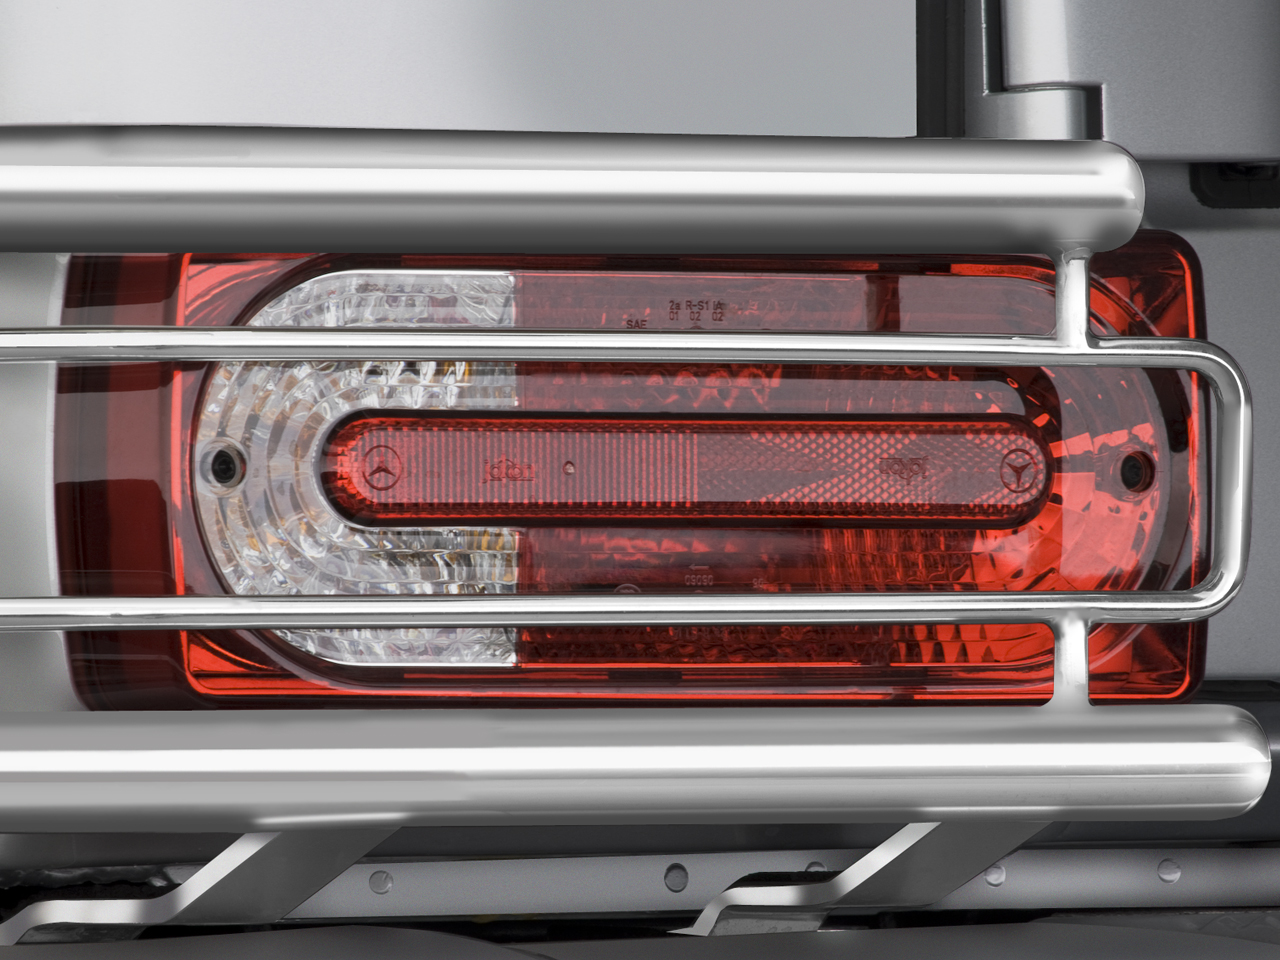 2008 mercedes benz g class g55 amg suv taillight the mercedes benz glk350 lands in ann arbor Chevy Tail Light Wiring Diagram at gsmportal.co